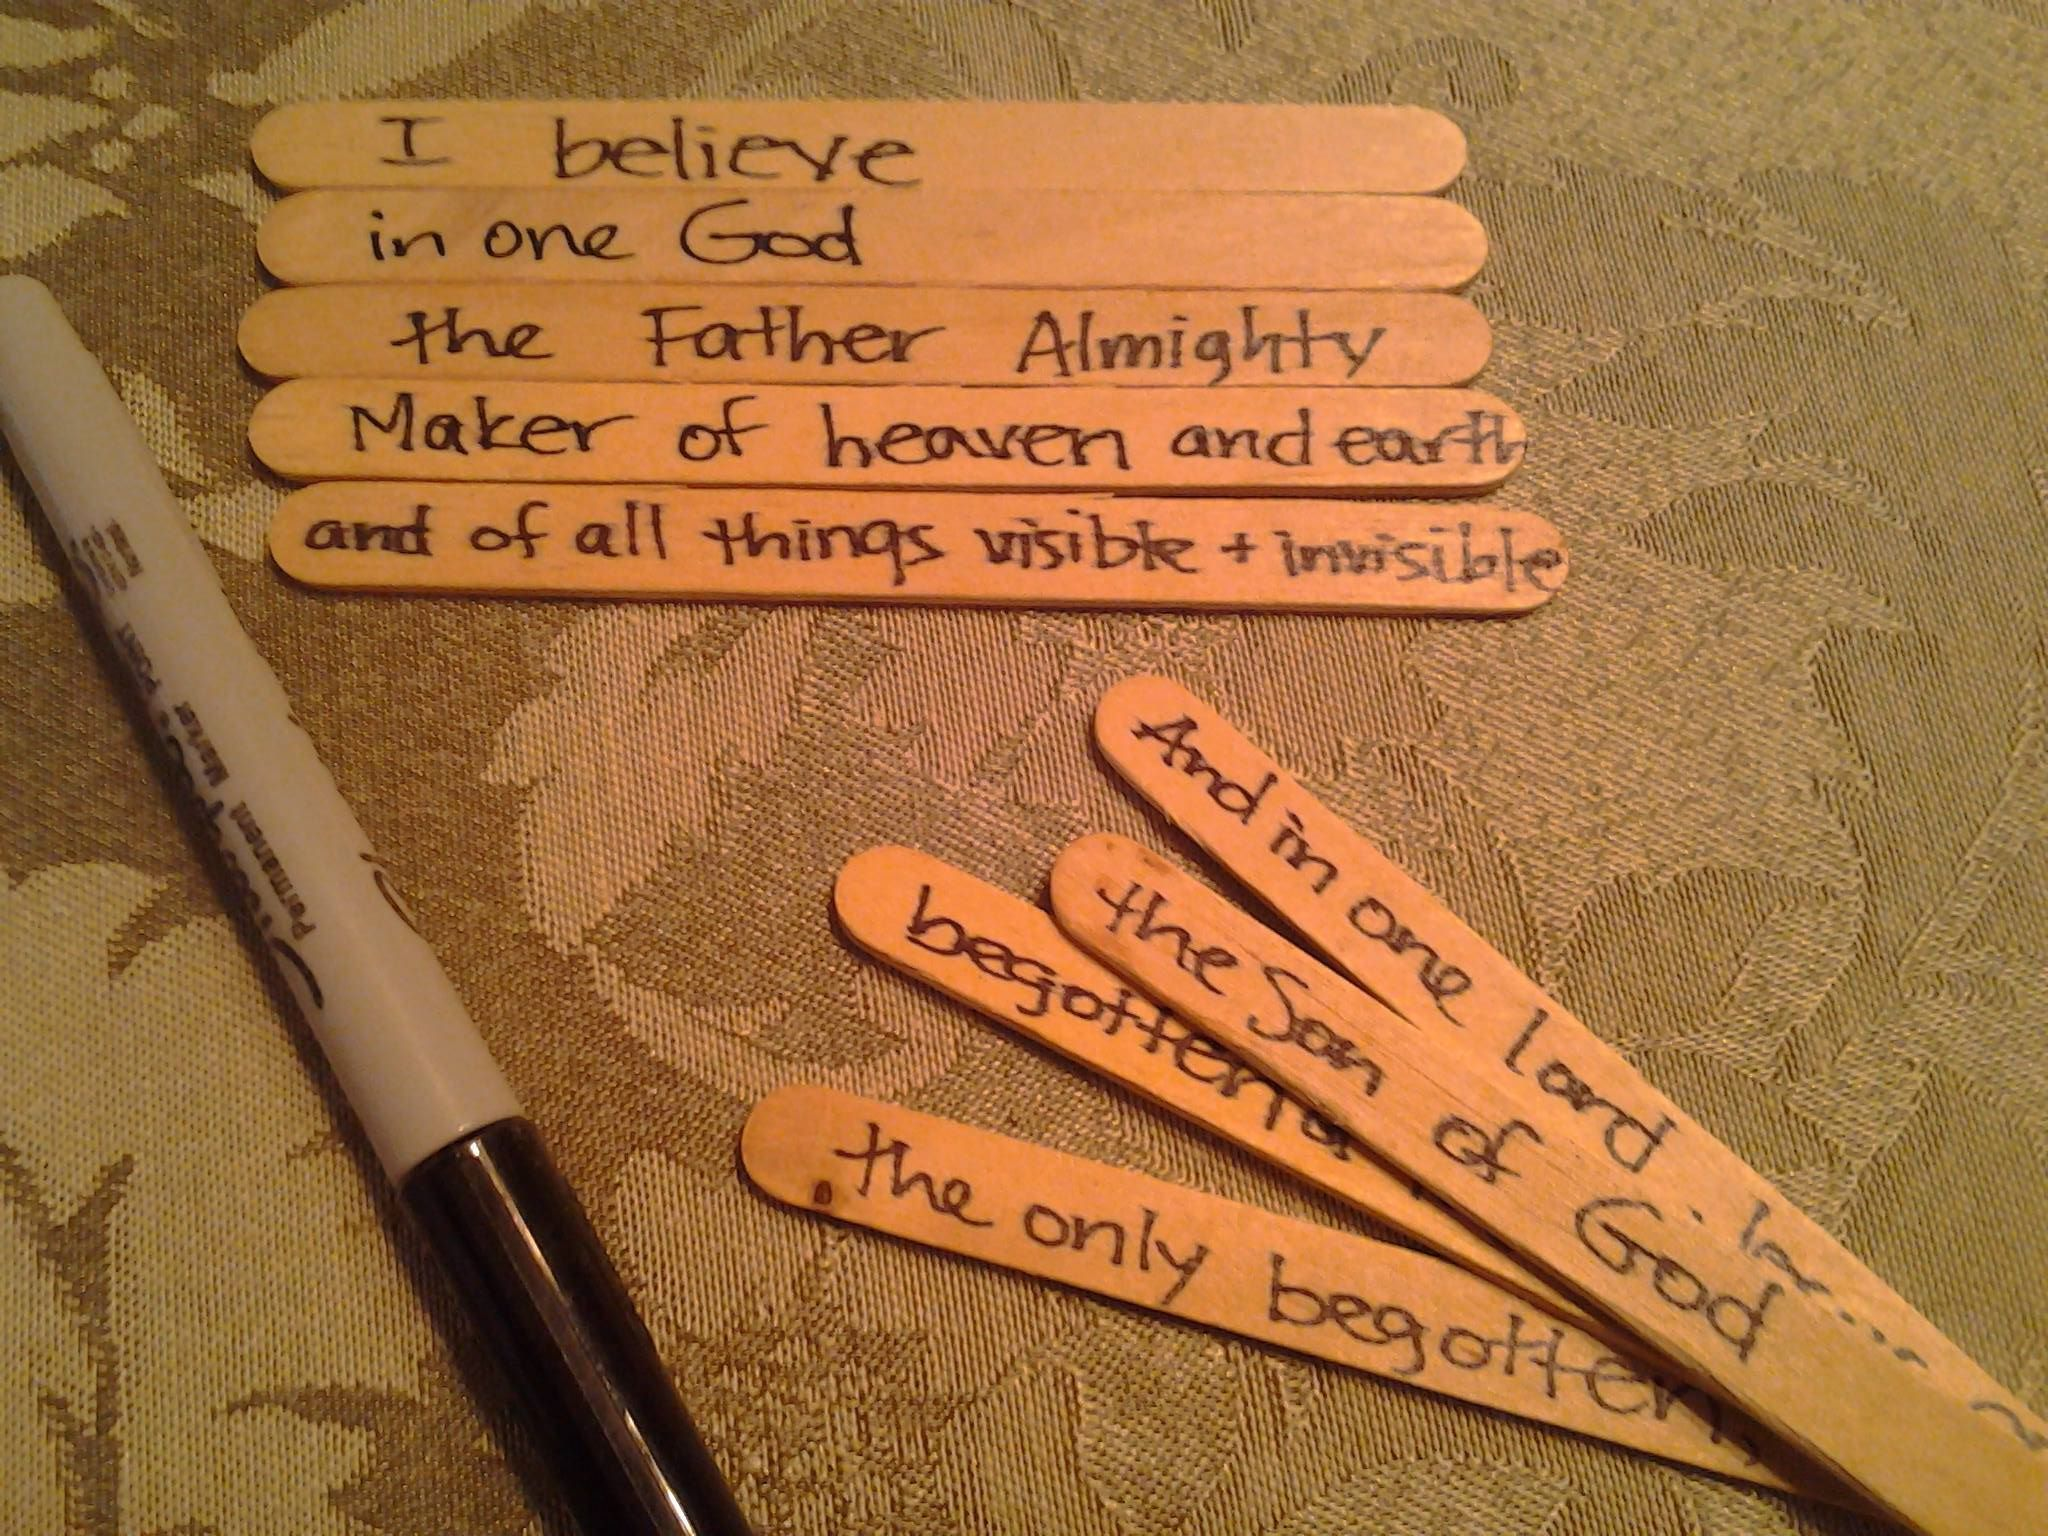 Write Each Phrase Of The Creed On A Popsicle Stick Mix Up All Of The Popsicle Sticks And Have